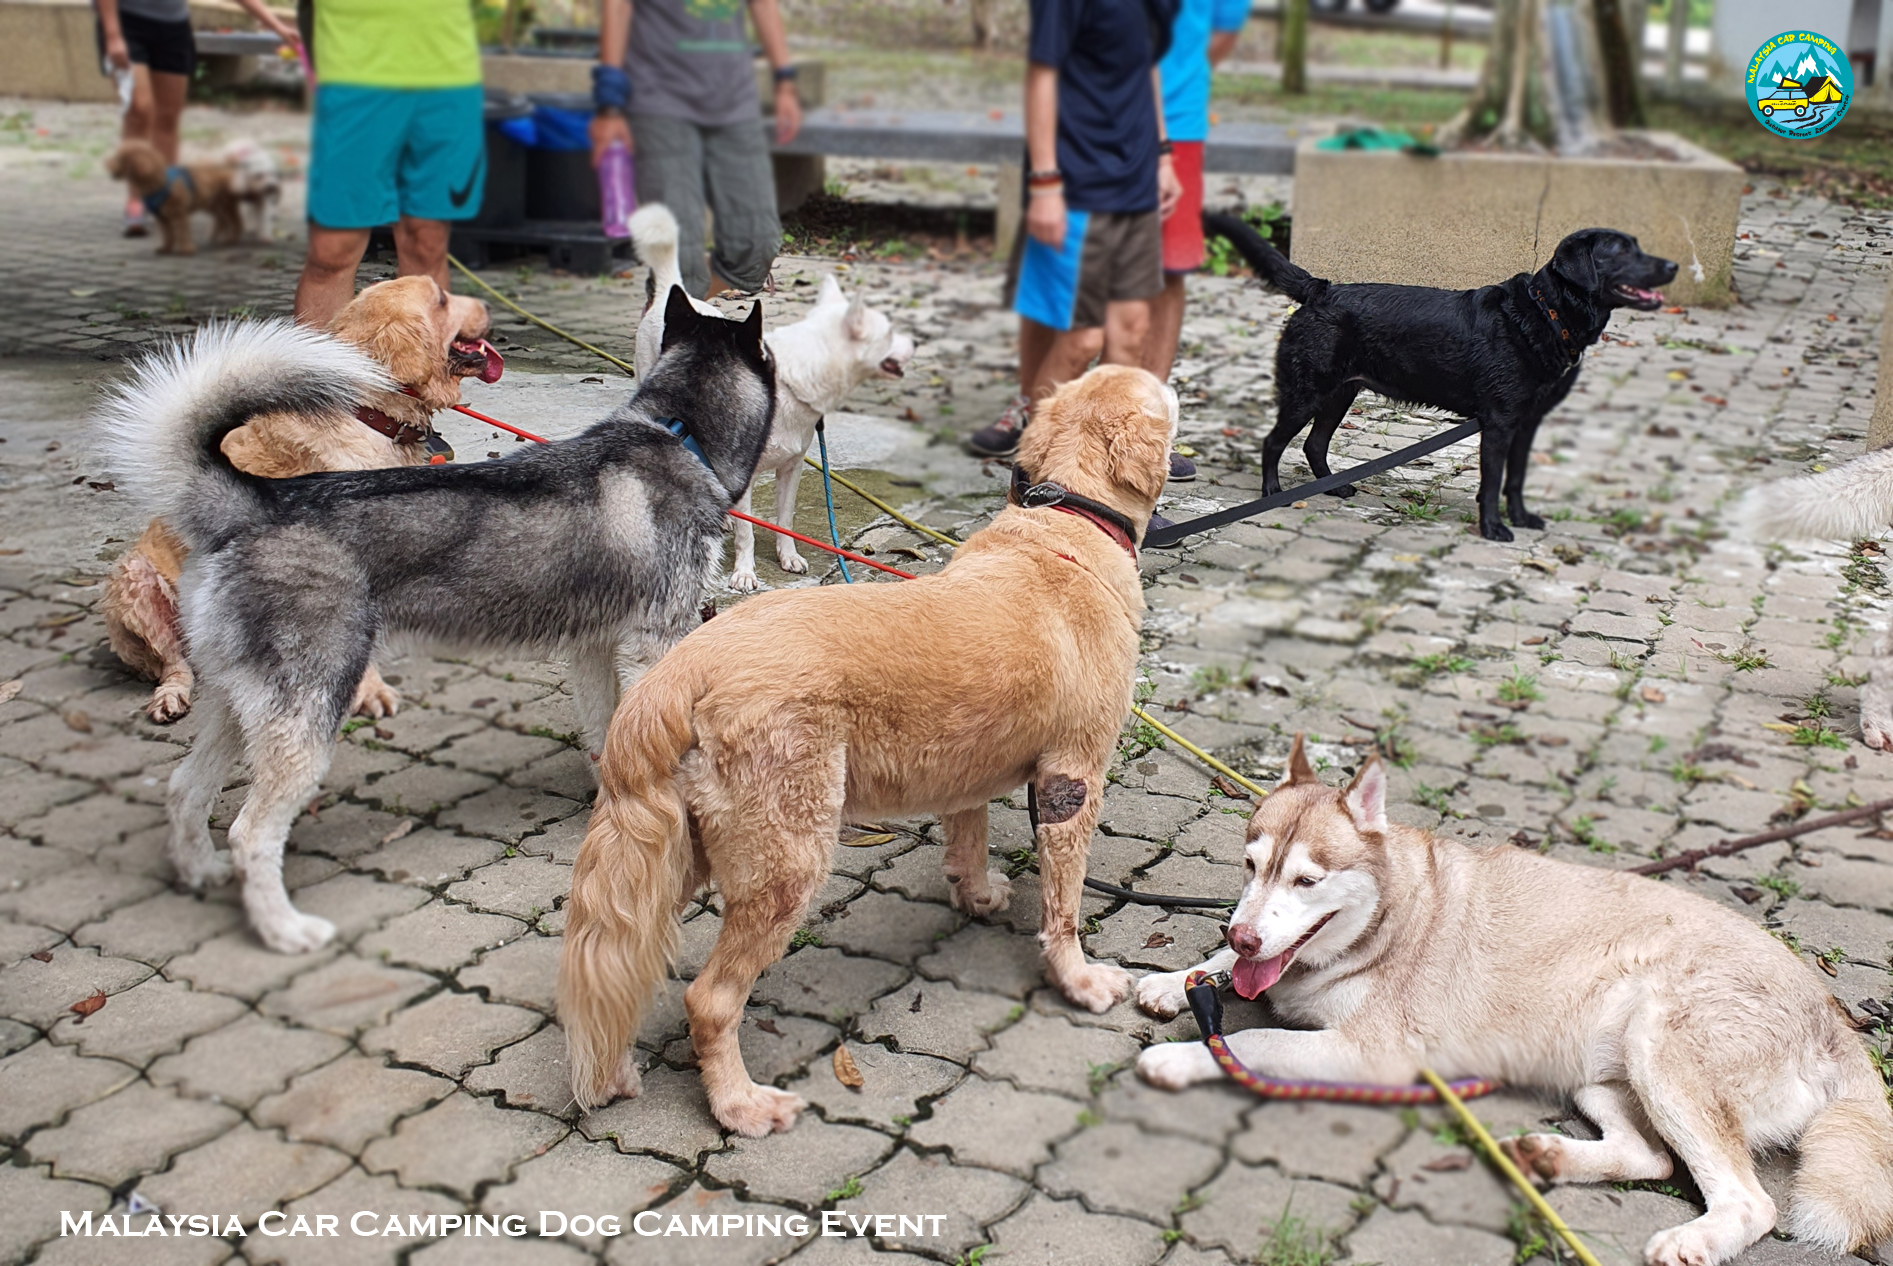 dog_camping_event_dog_lover_selangor_camping_site_malaysia_car_camping_private_event_organizer-9